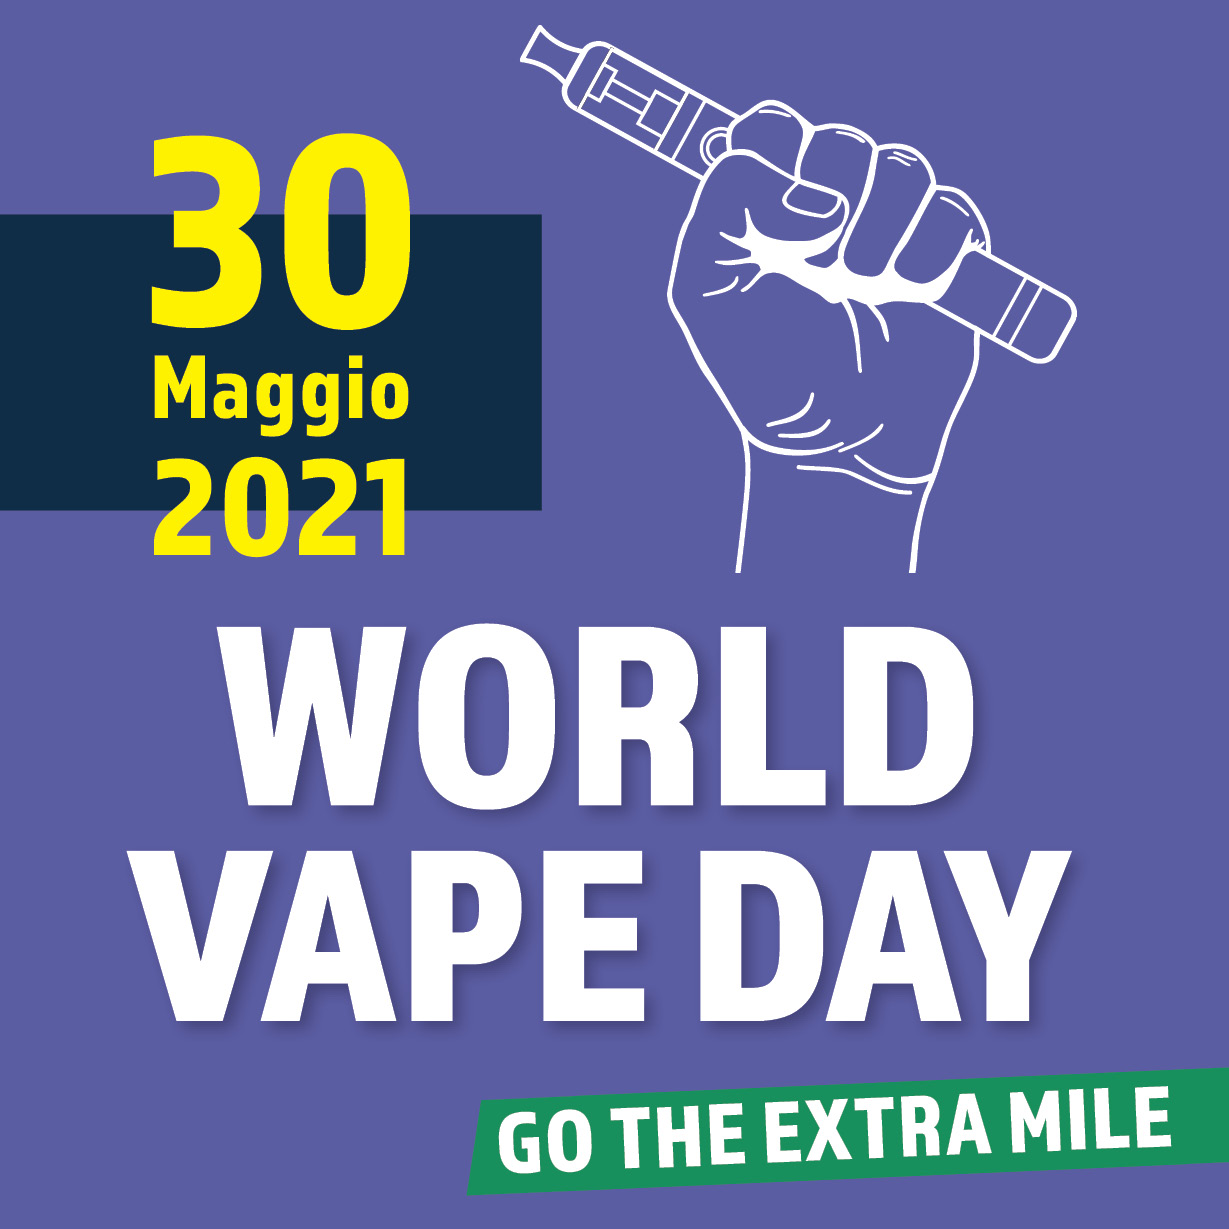 Salute world vape day